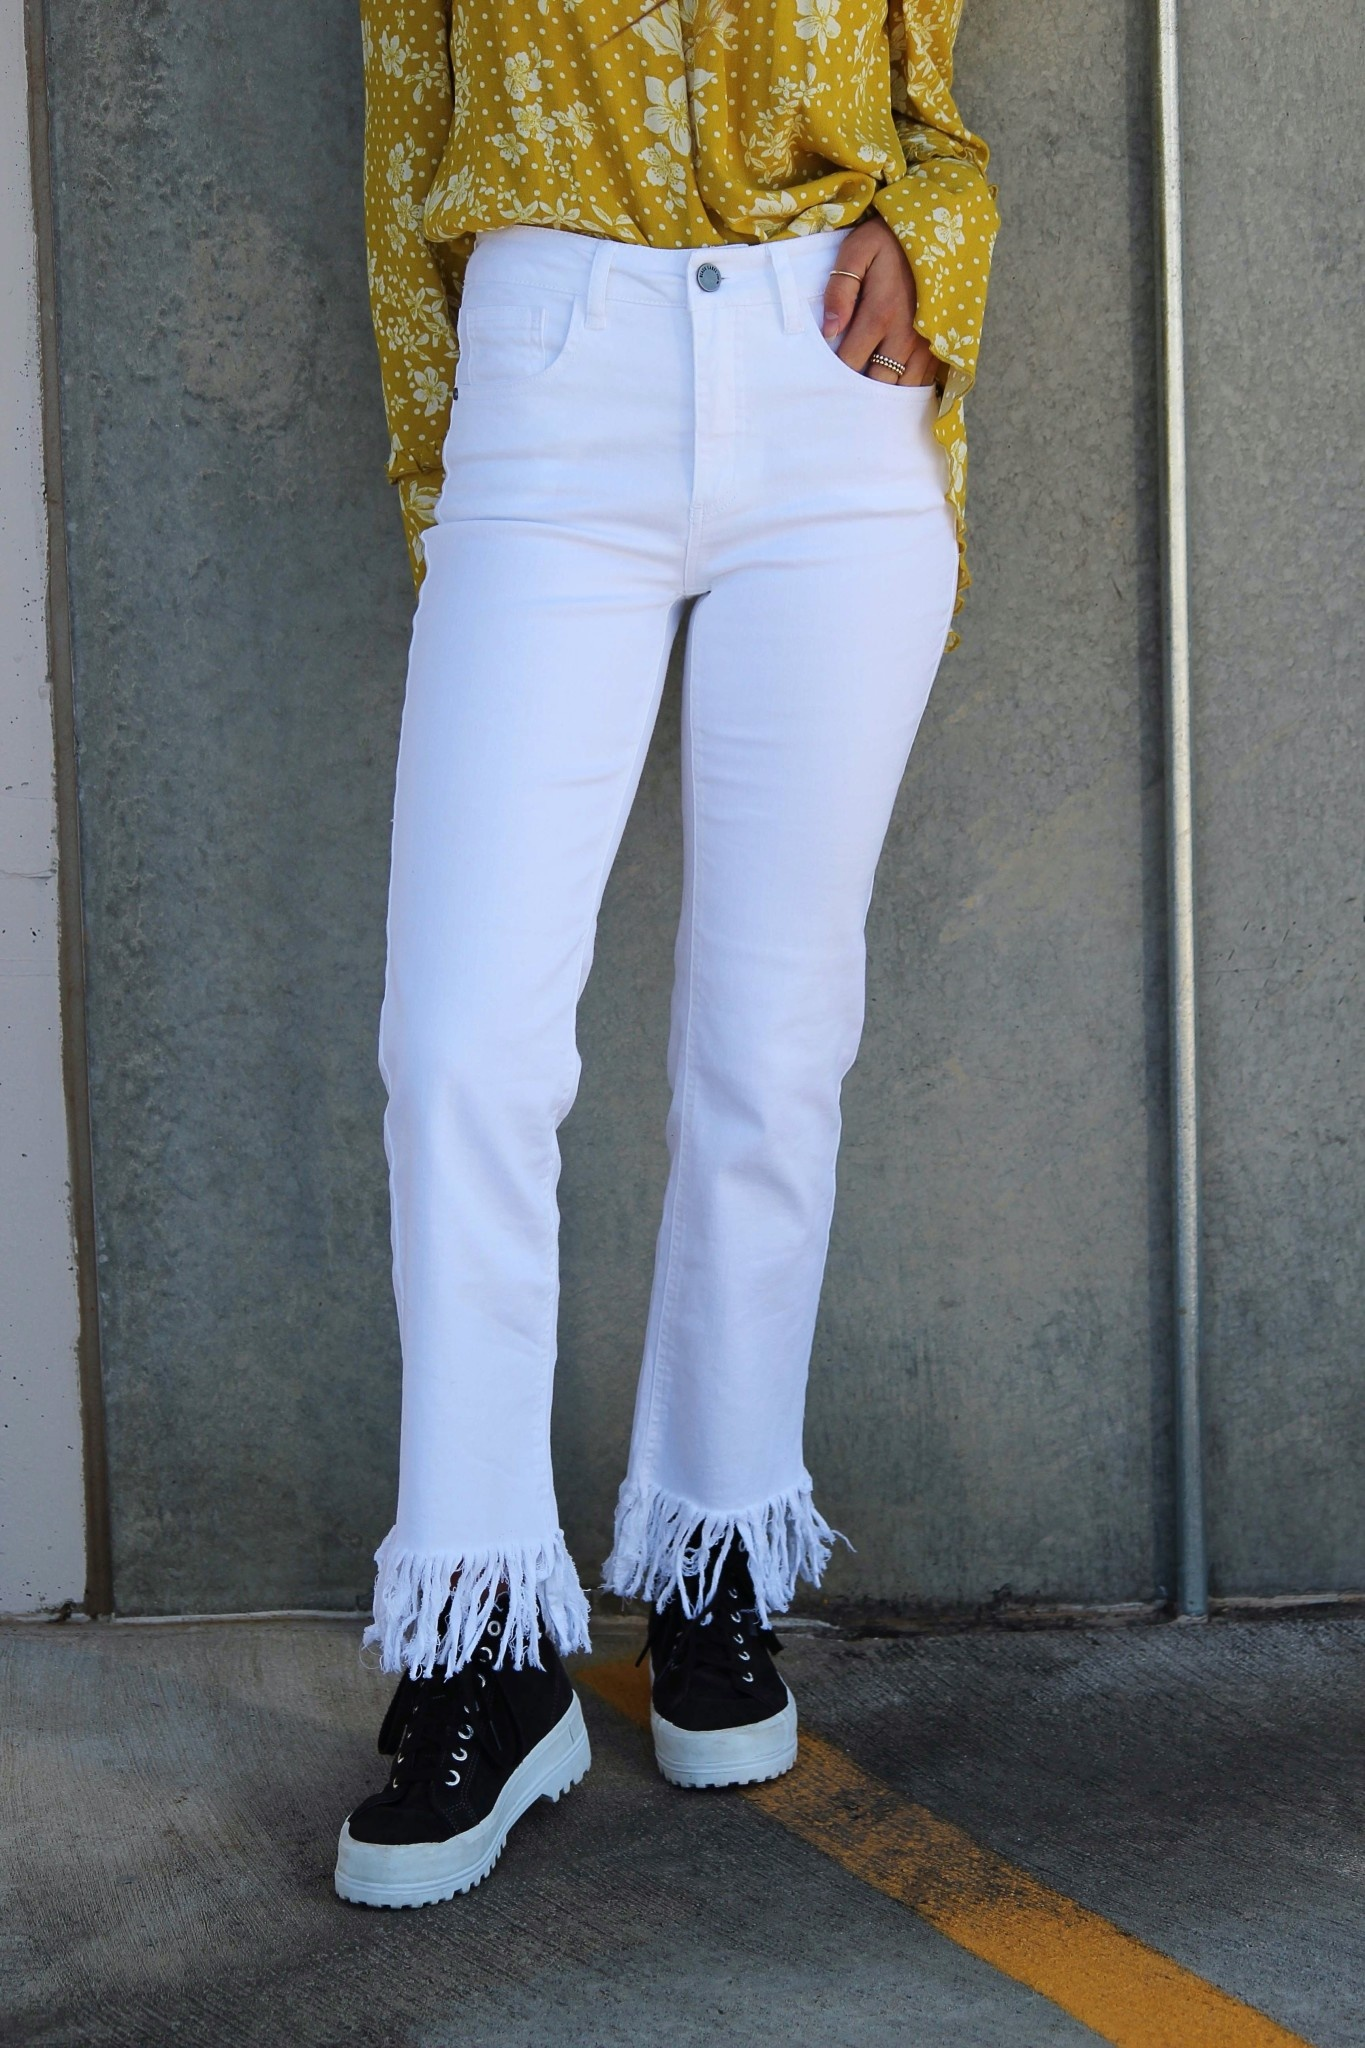 HIGH-WAIST FRINGE WHITE JEANS